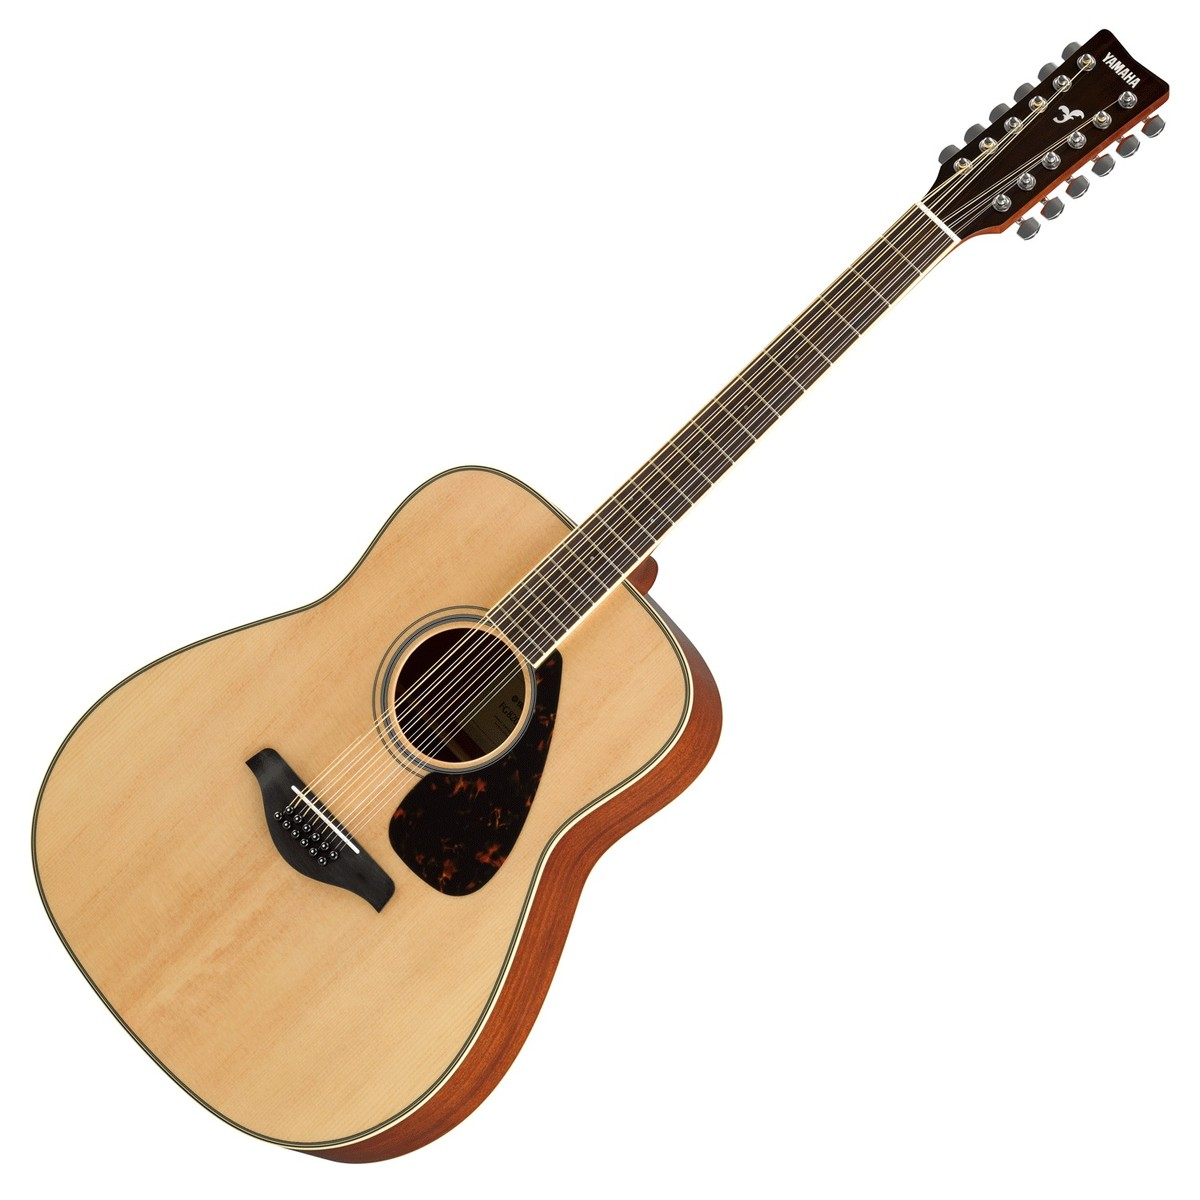 Best Budget 12-String Guitar (under $500)